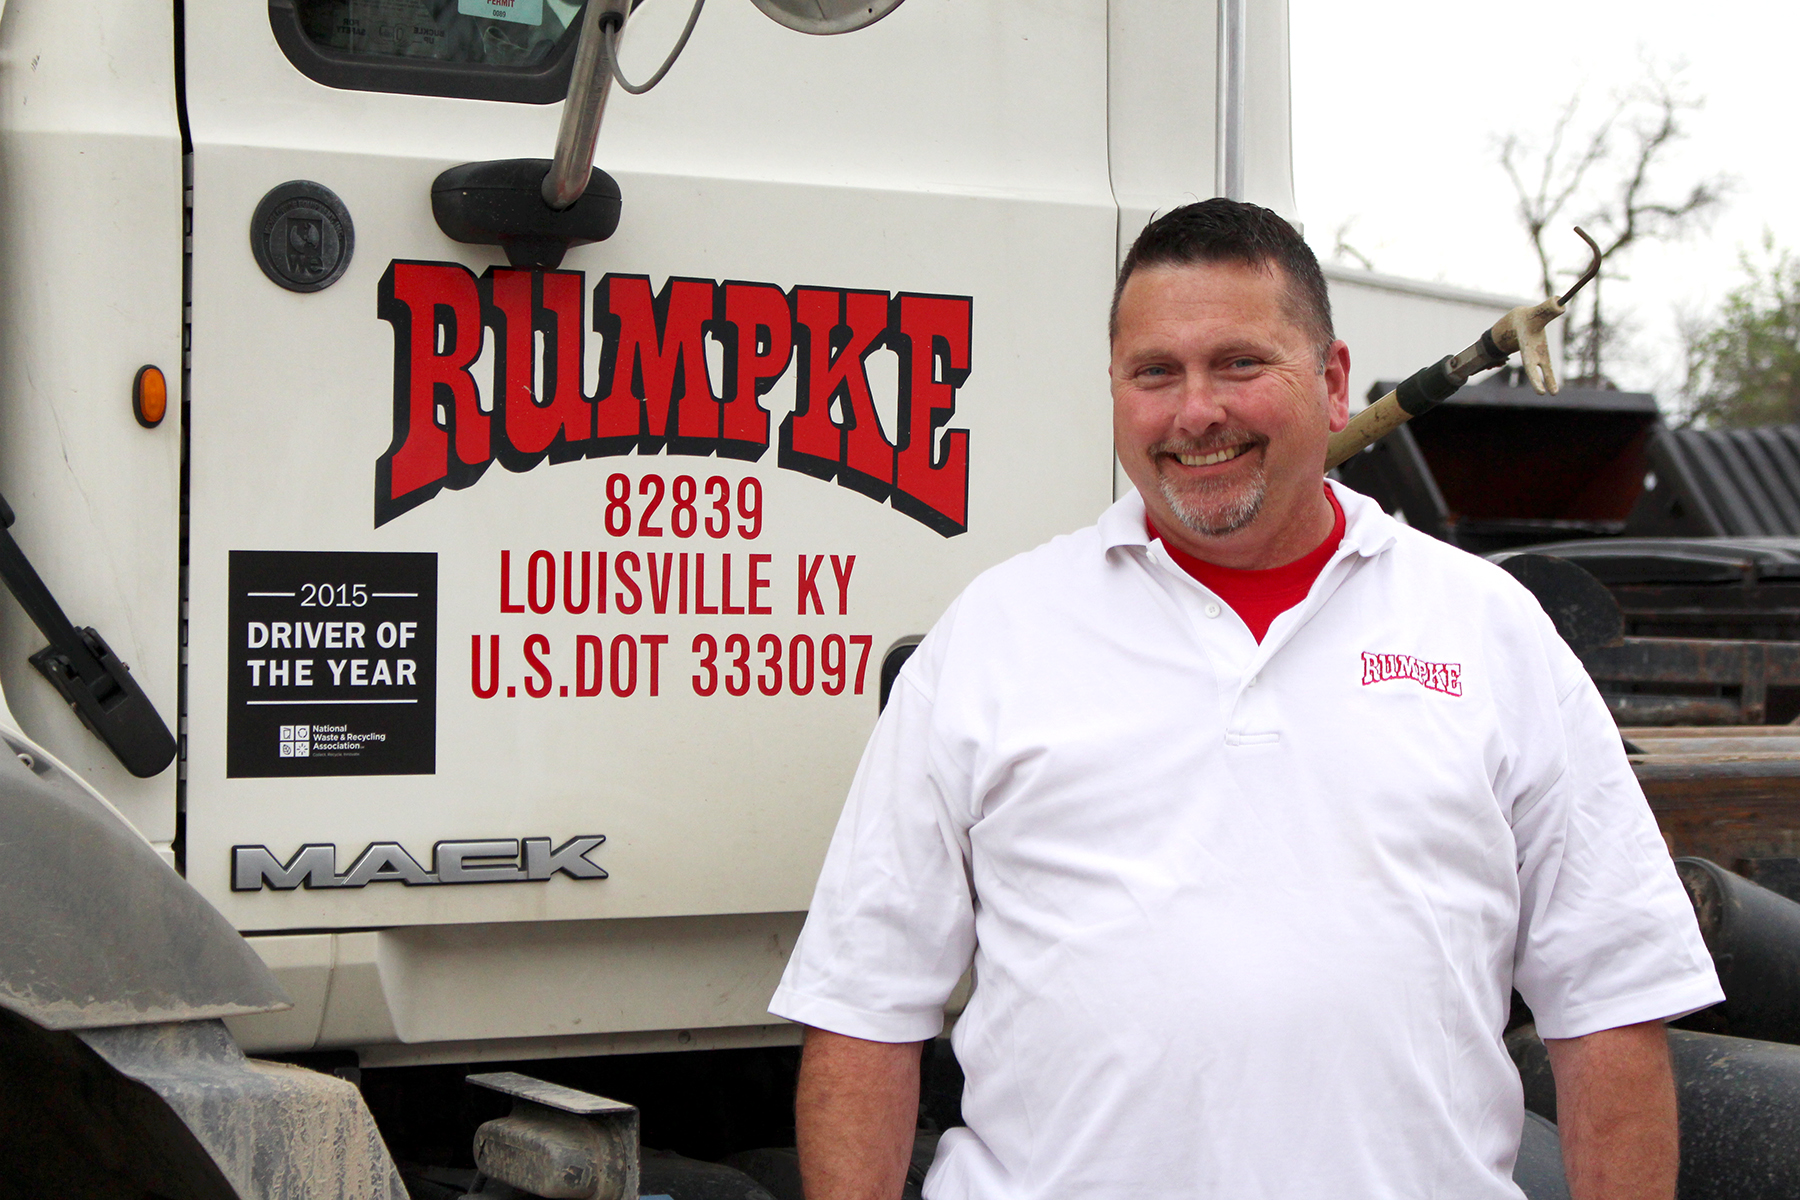 Garbage Truck Driver Shares the Keys to Success